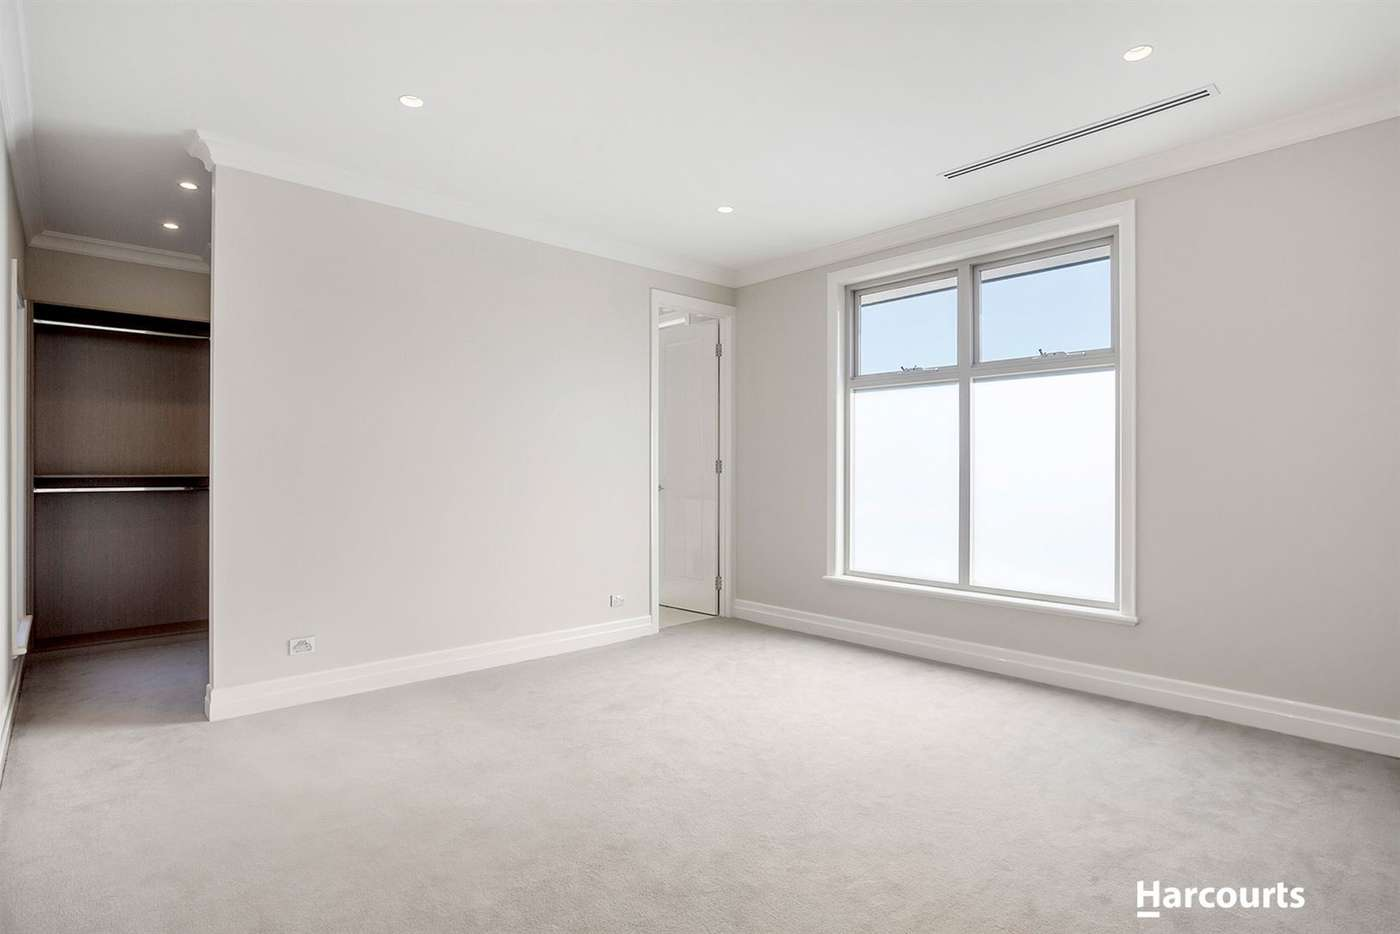 Sixth view of Homely house listing, 35 Turnley Street, Balwyn North VIC 3104